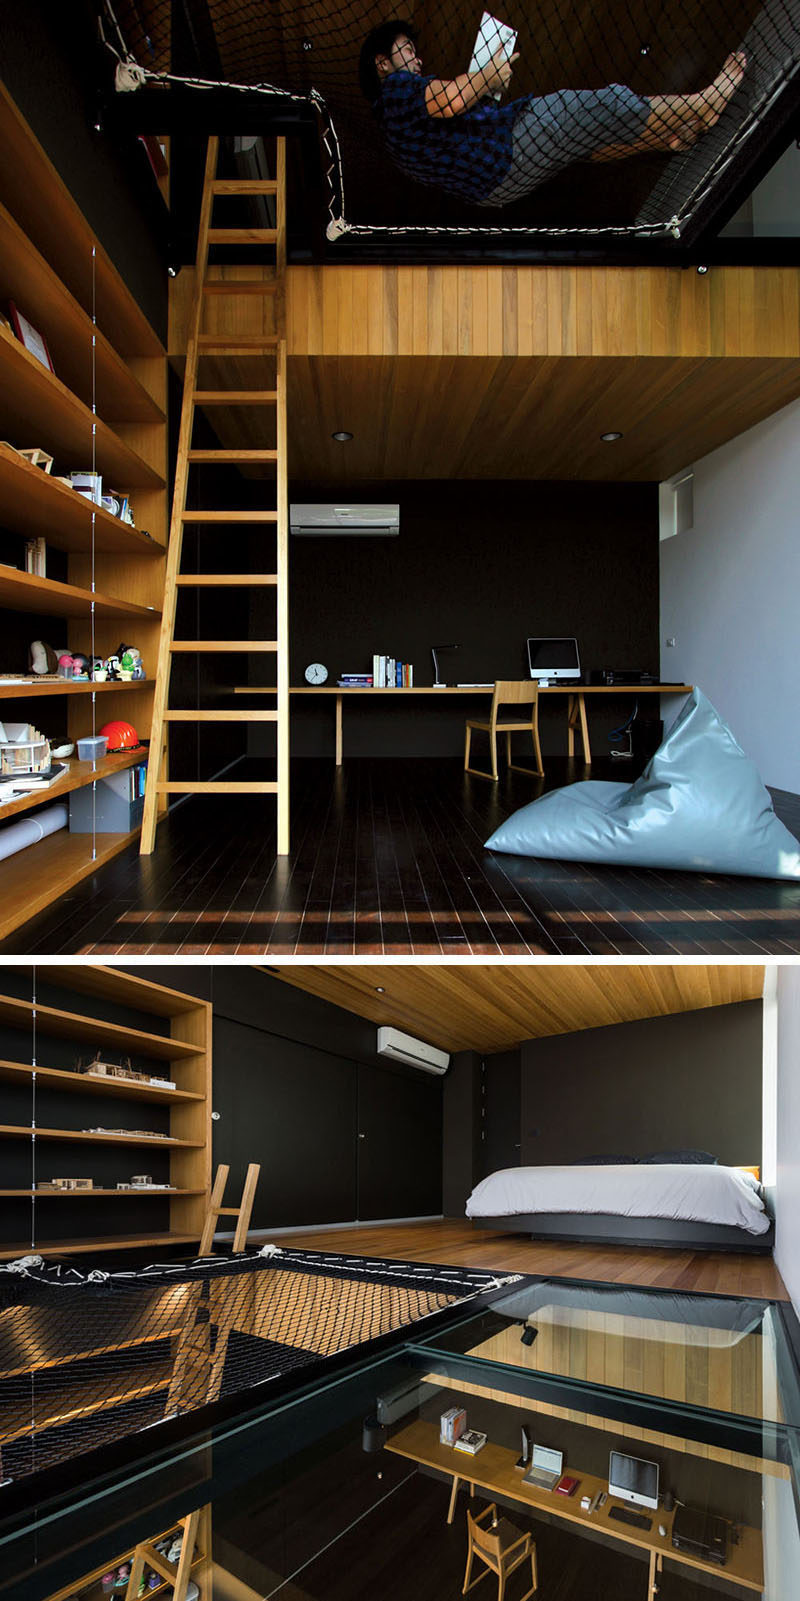 The loft space in this teenager's bedroom is made up of a sleeping area, a net lounge, and a glass floor that makes it easy to see what's going on down below.